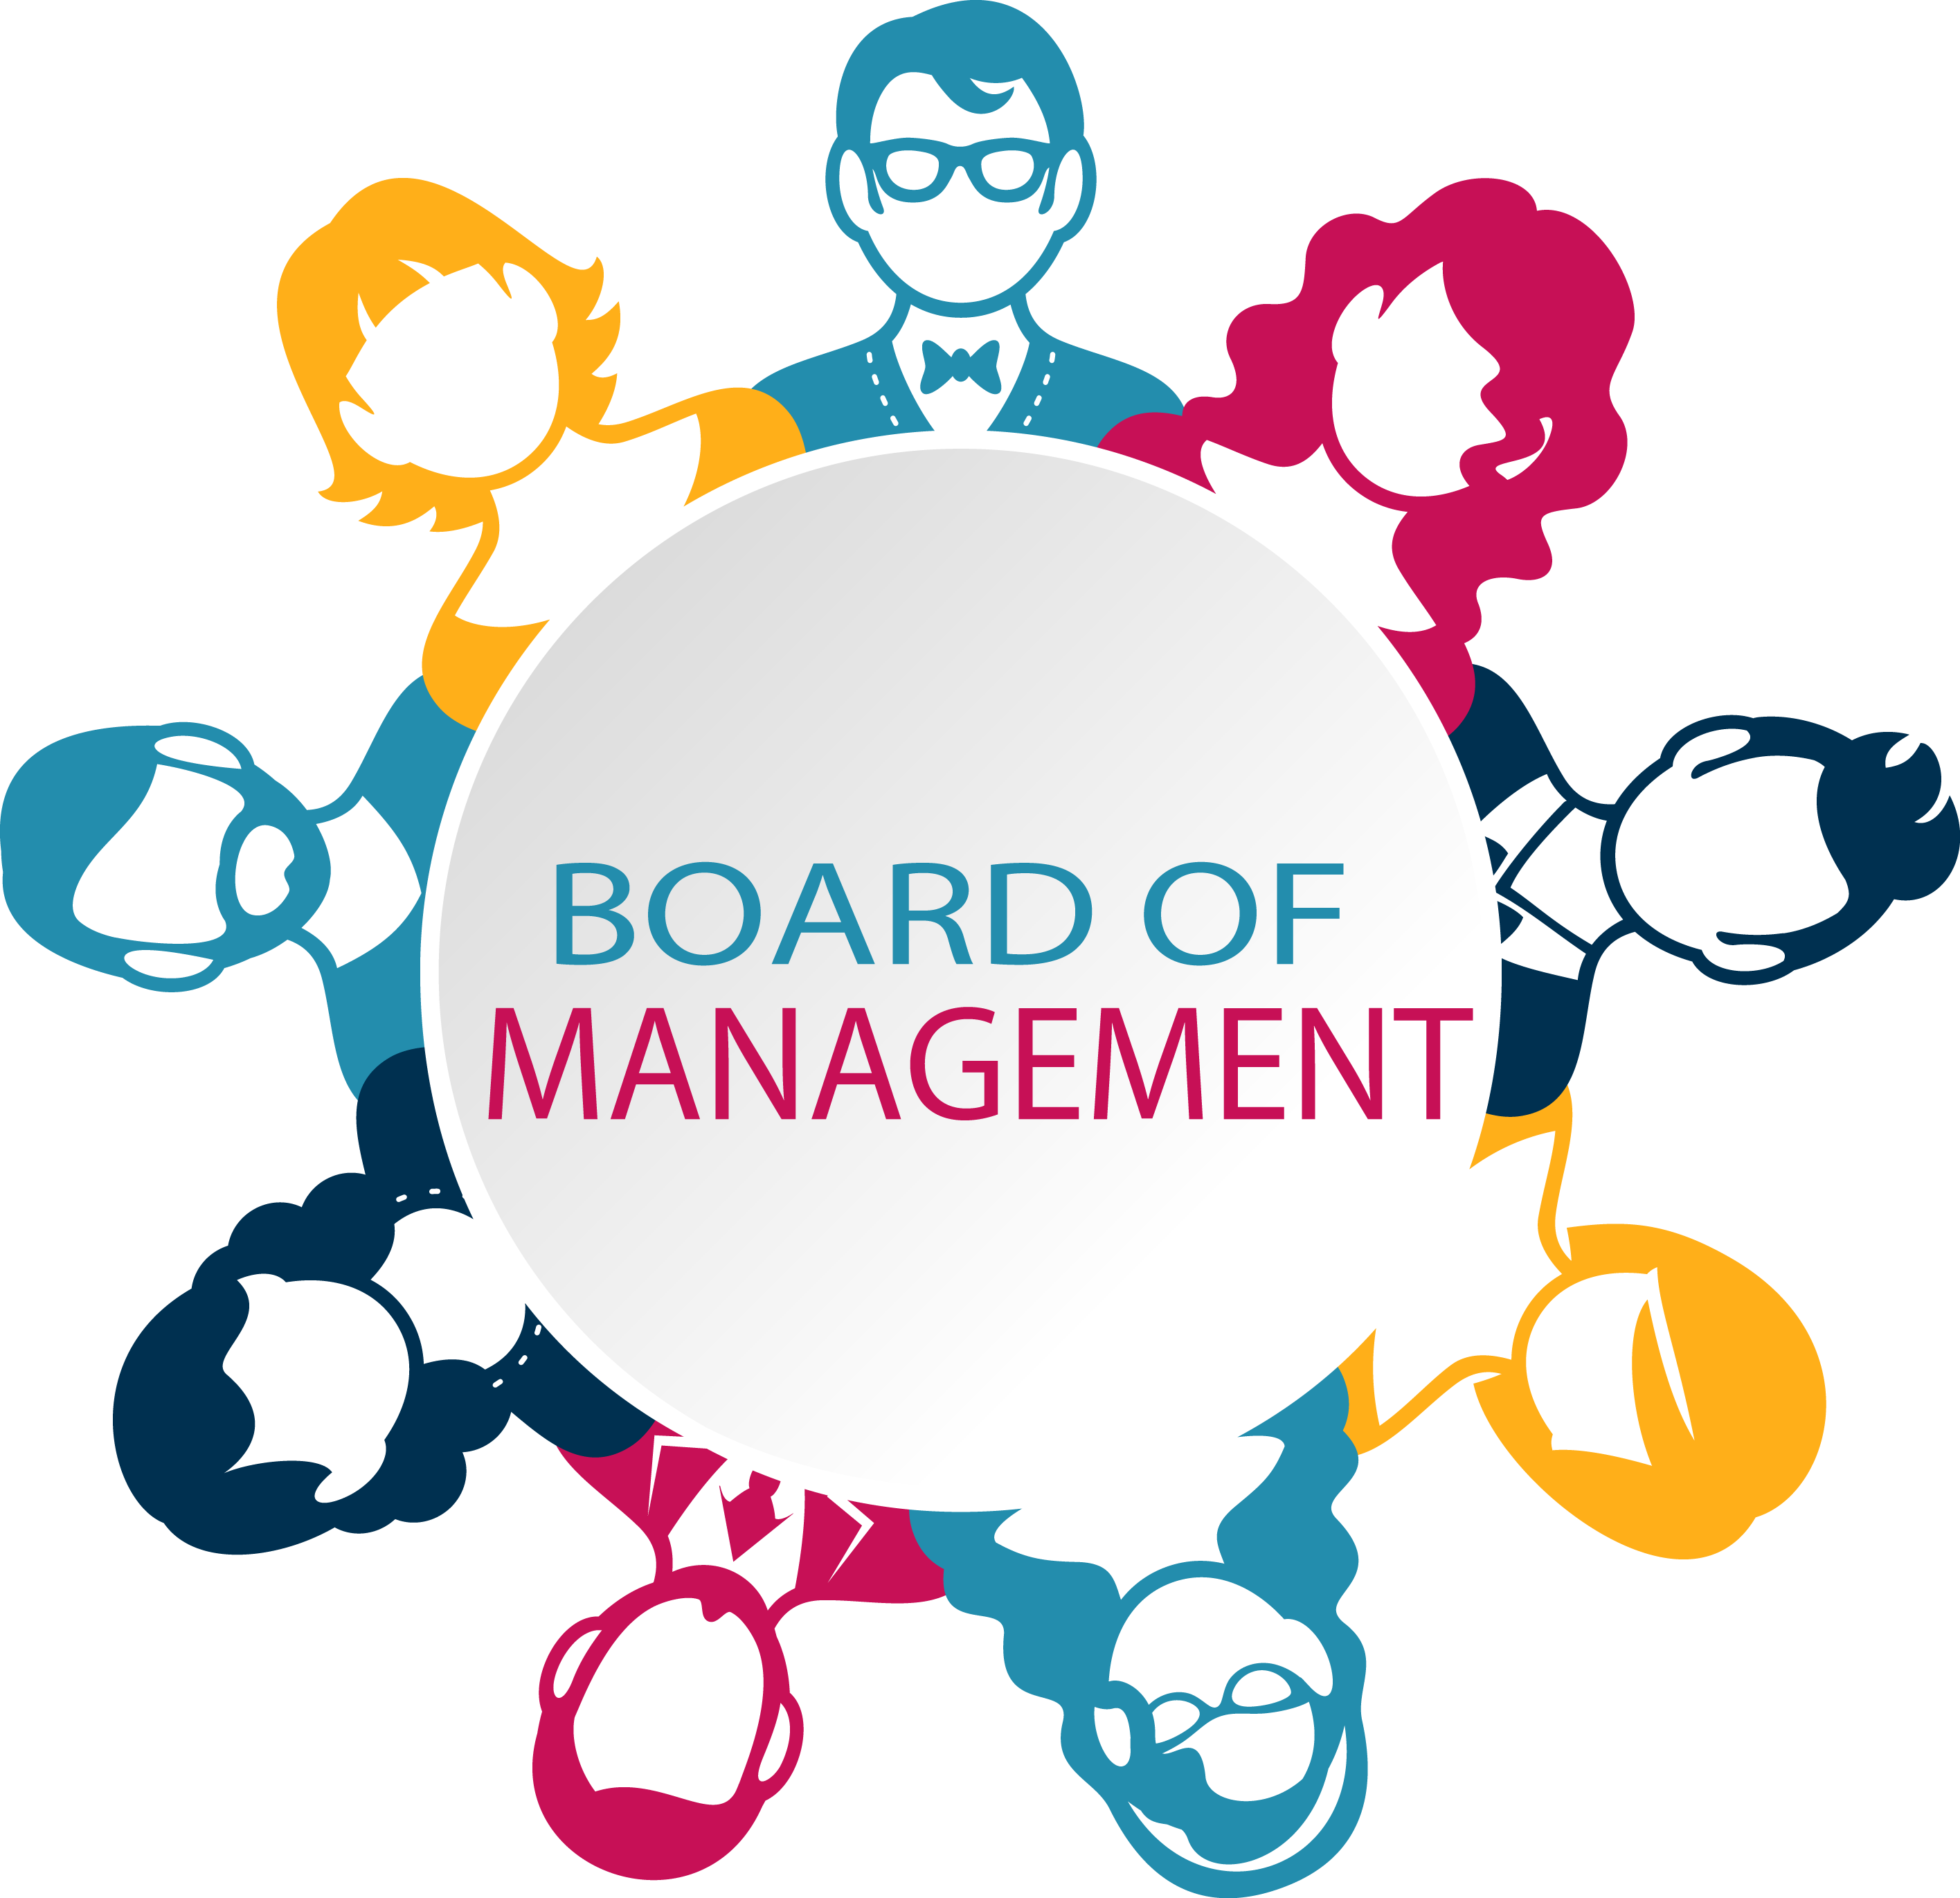 Management And Board >> Board Of Management Scoil Una Naofa Preschool And Primary School